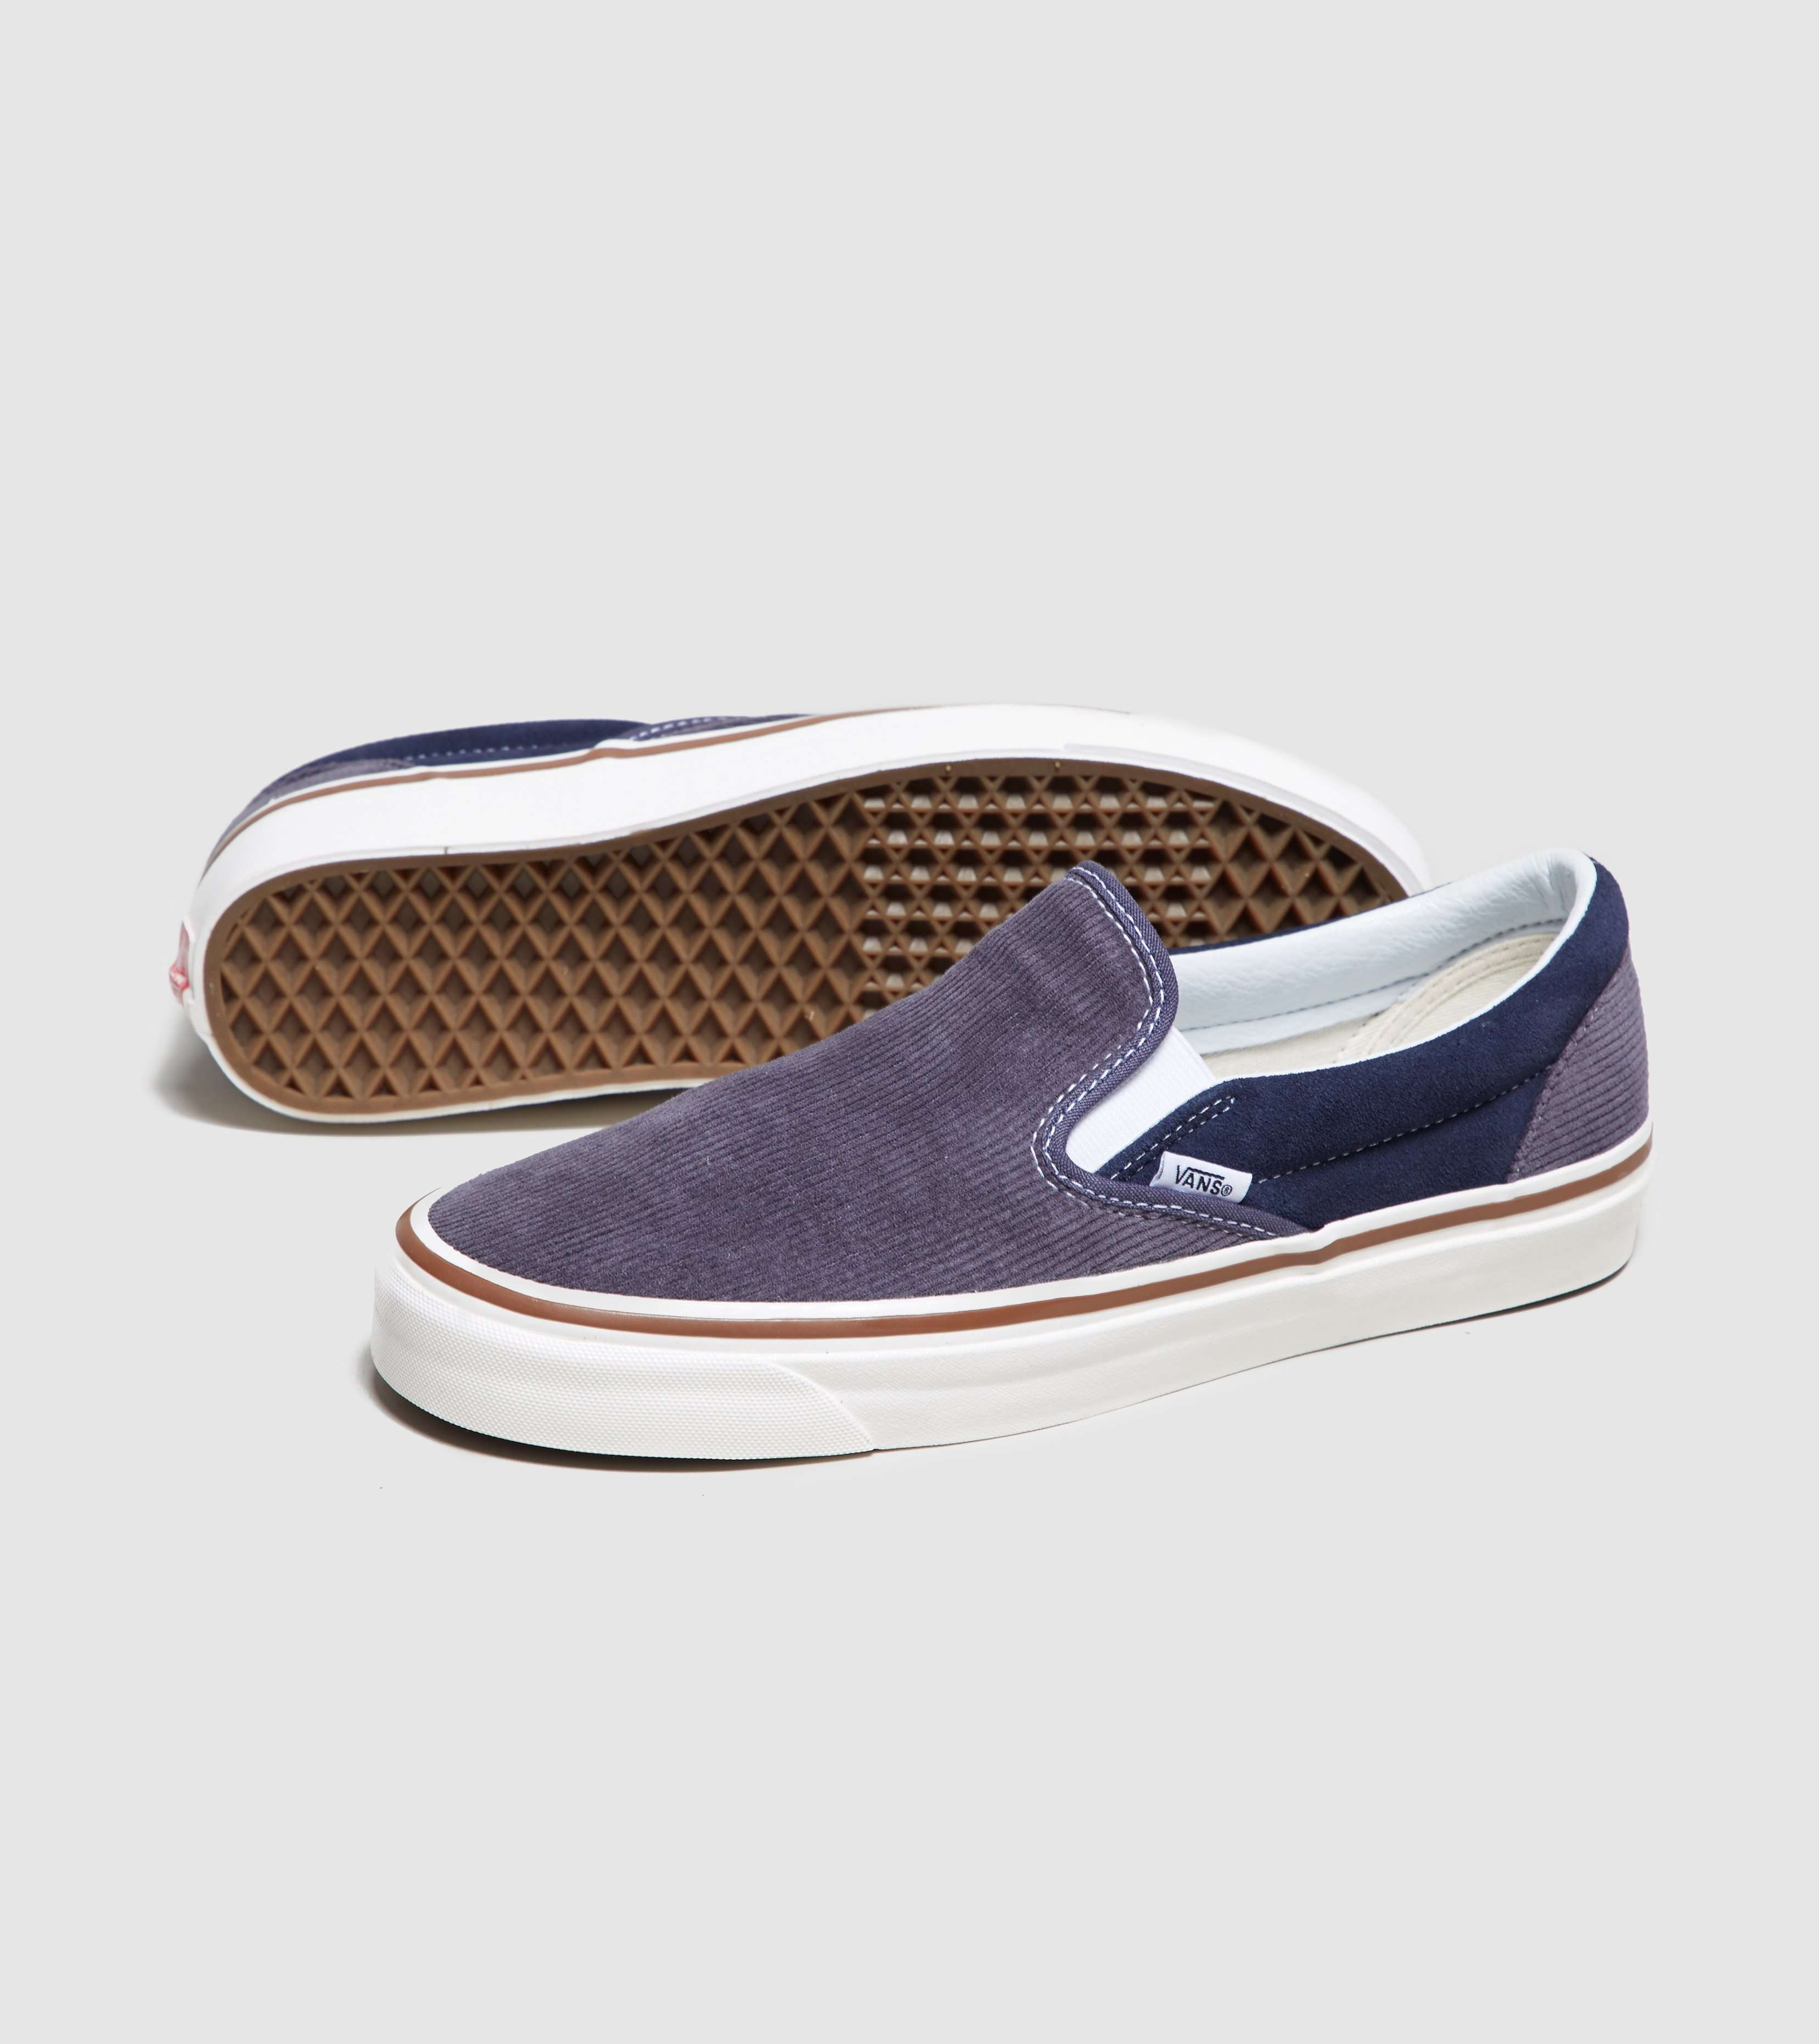 Vans Slip On 98 DX Cord